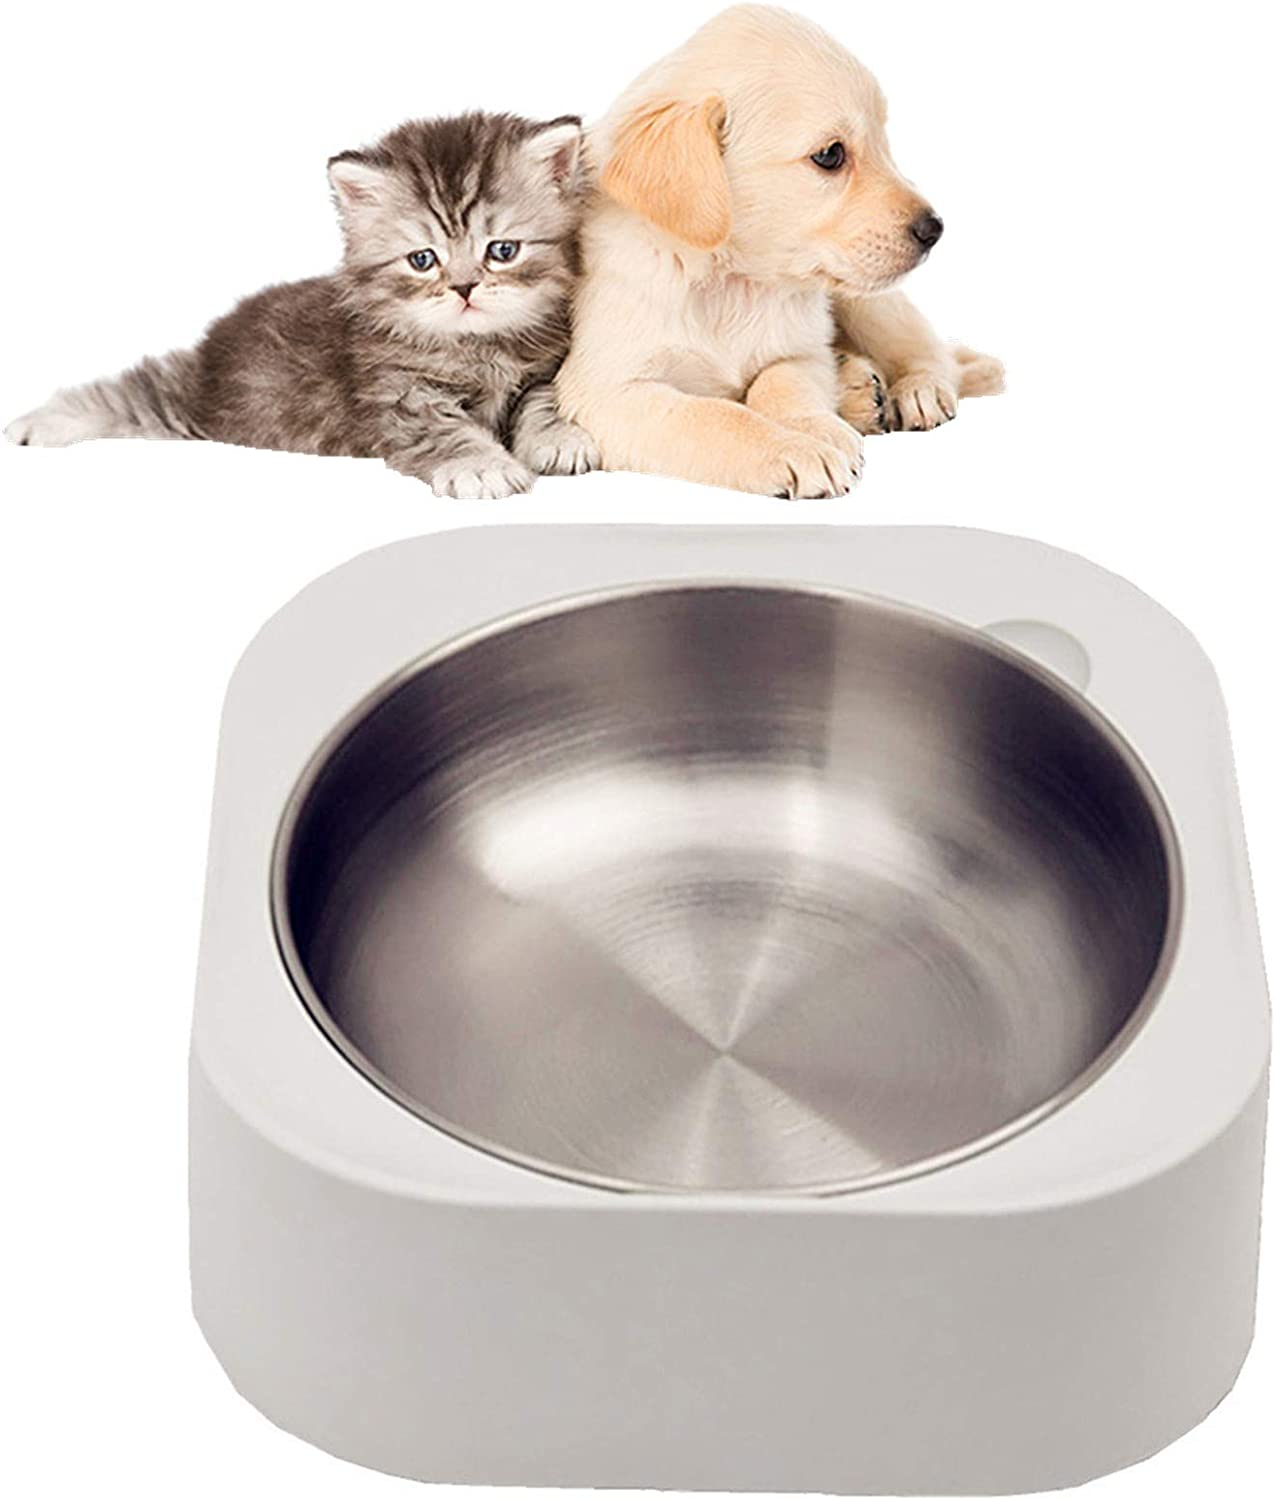 Cat Dog Food Bowls:Slanted Cat Bowls for Food and Water,Stainless Steel Dog Bowl with Heavy Stand for Cats and Small Dogs,Non-Slip Non-Spill and Easier to Reach Food